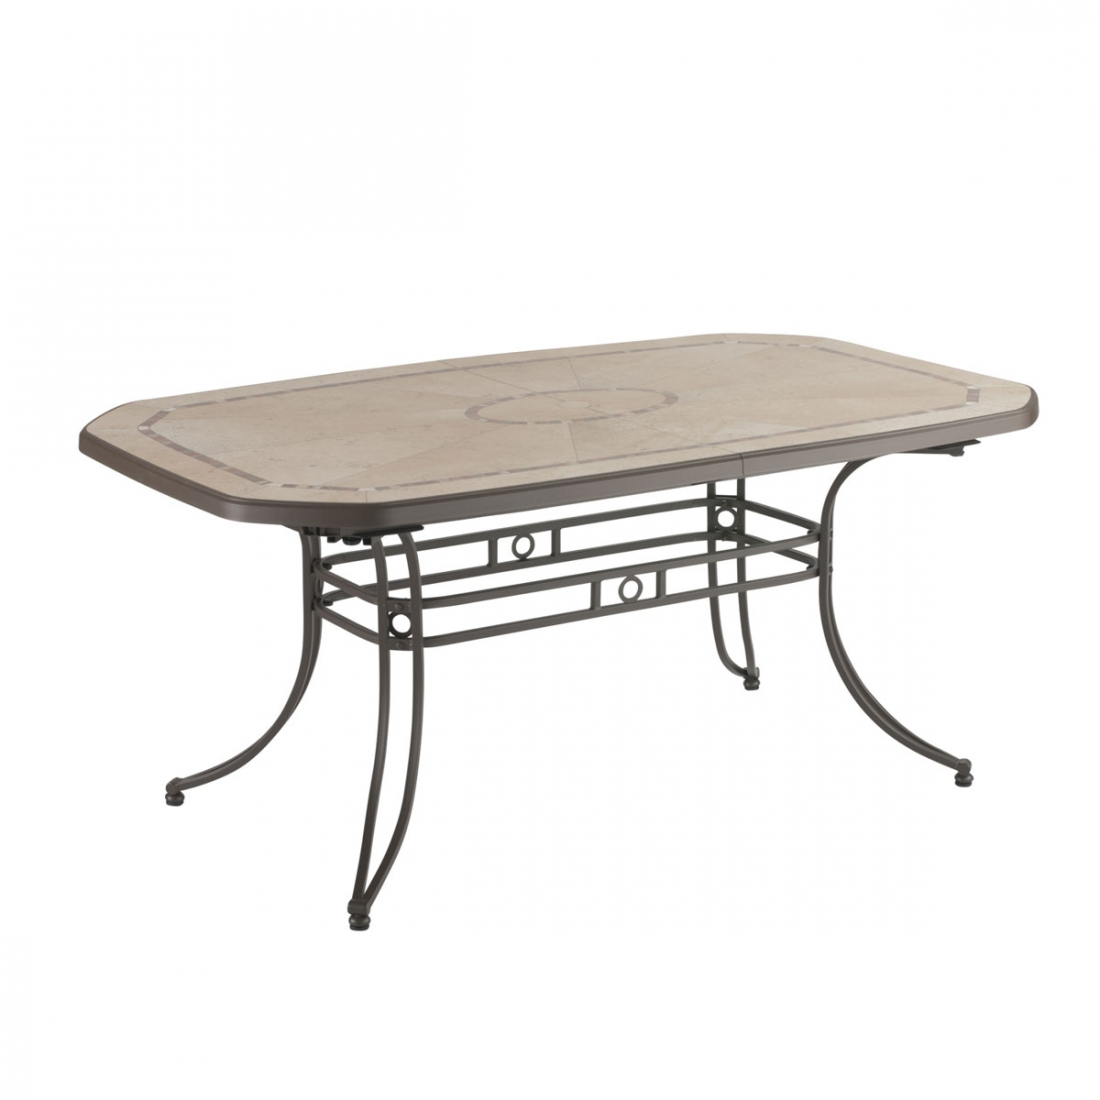 Table Design Amalfi 220 Grosfillex